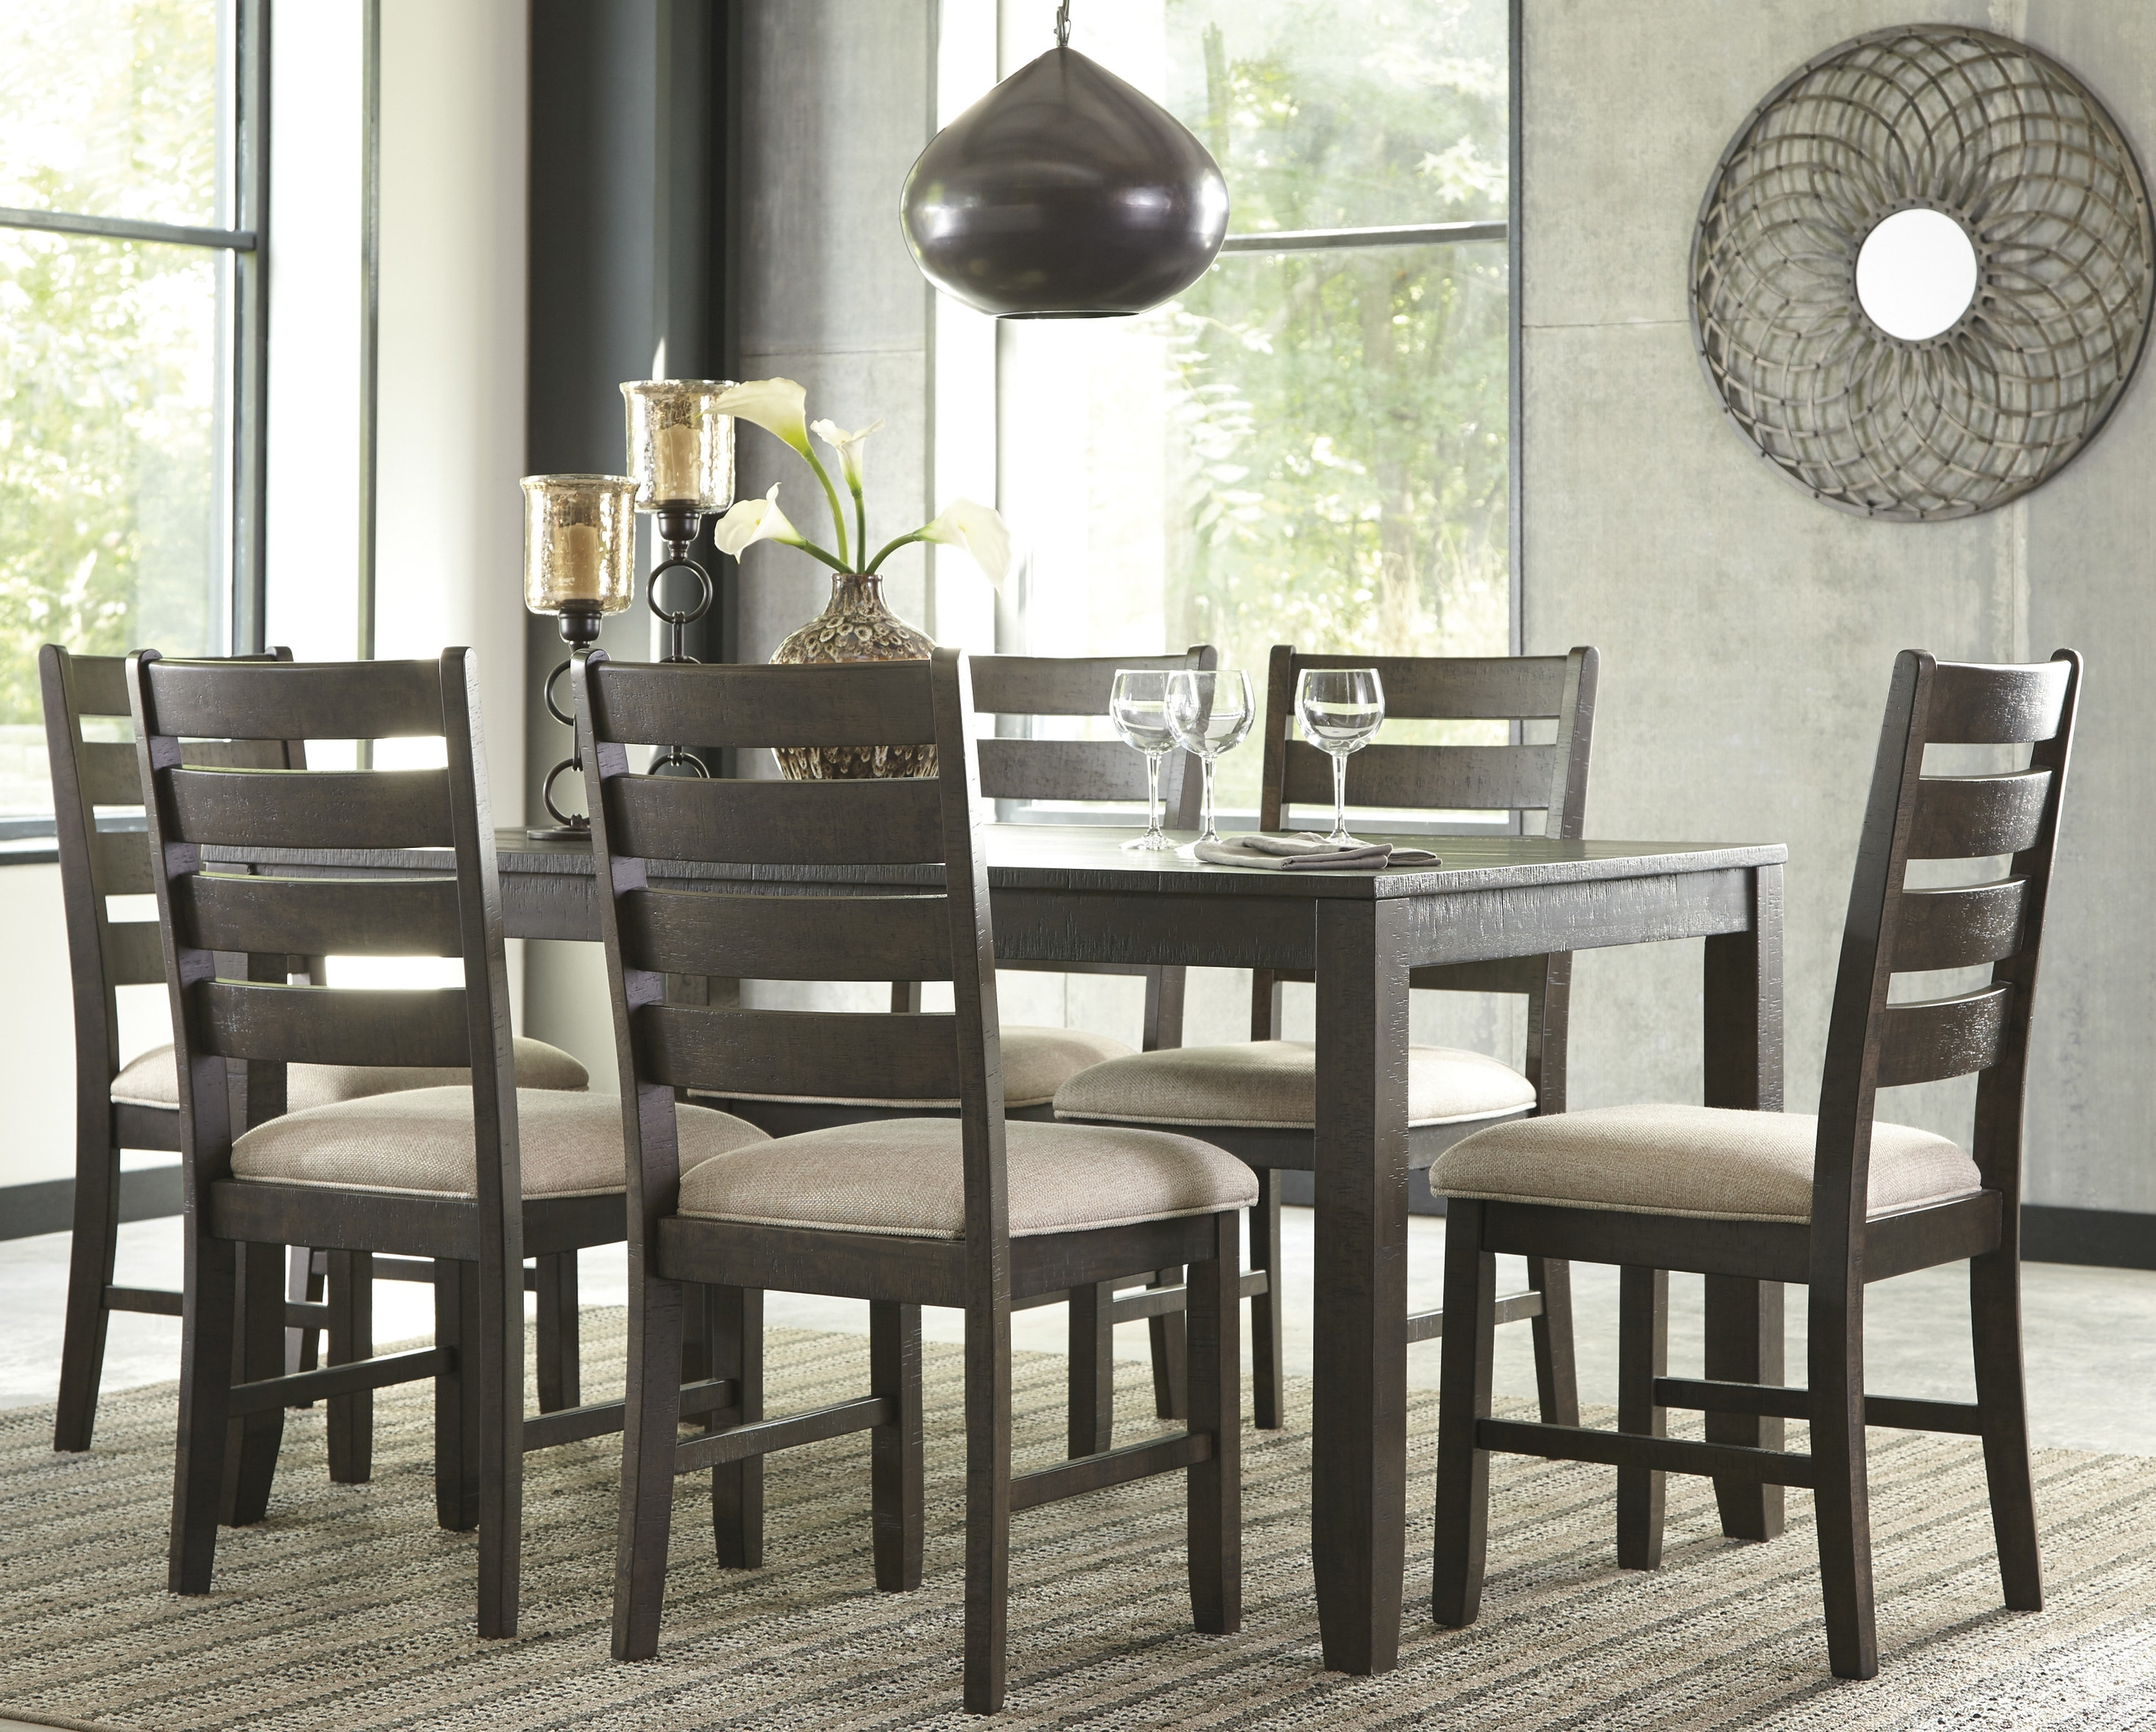 Partridge 7 Piece Dining Sets With Widely Used Choosing The Right 7 Piece Dining Set – Goodworksfurniture (View 6 of 25)